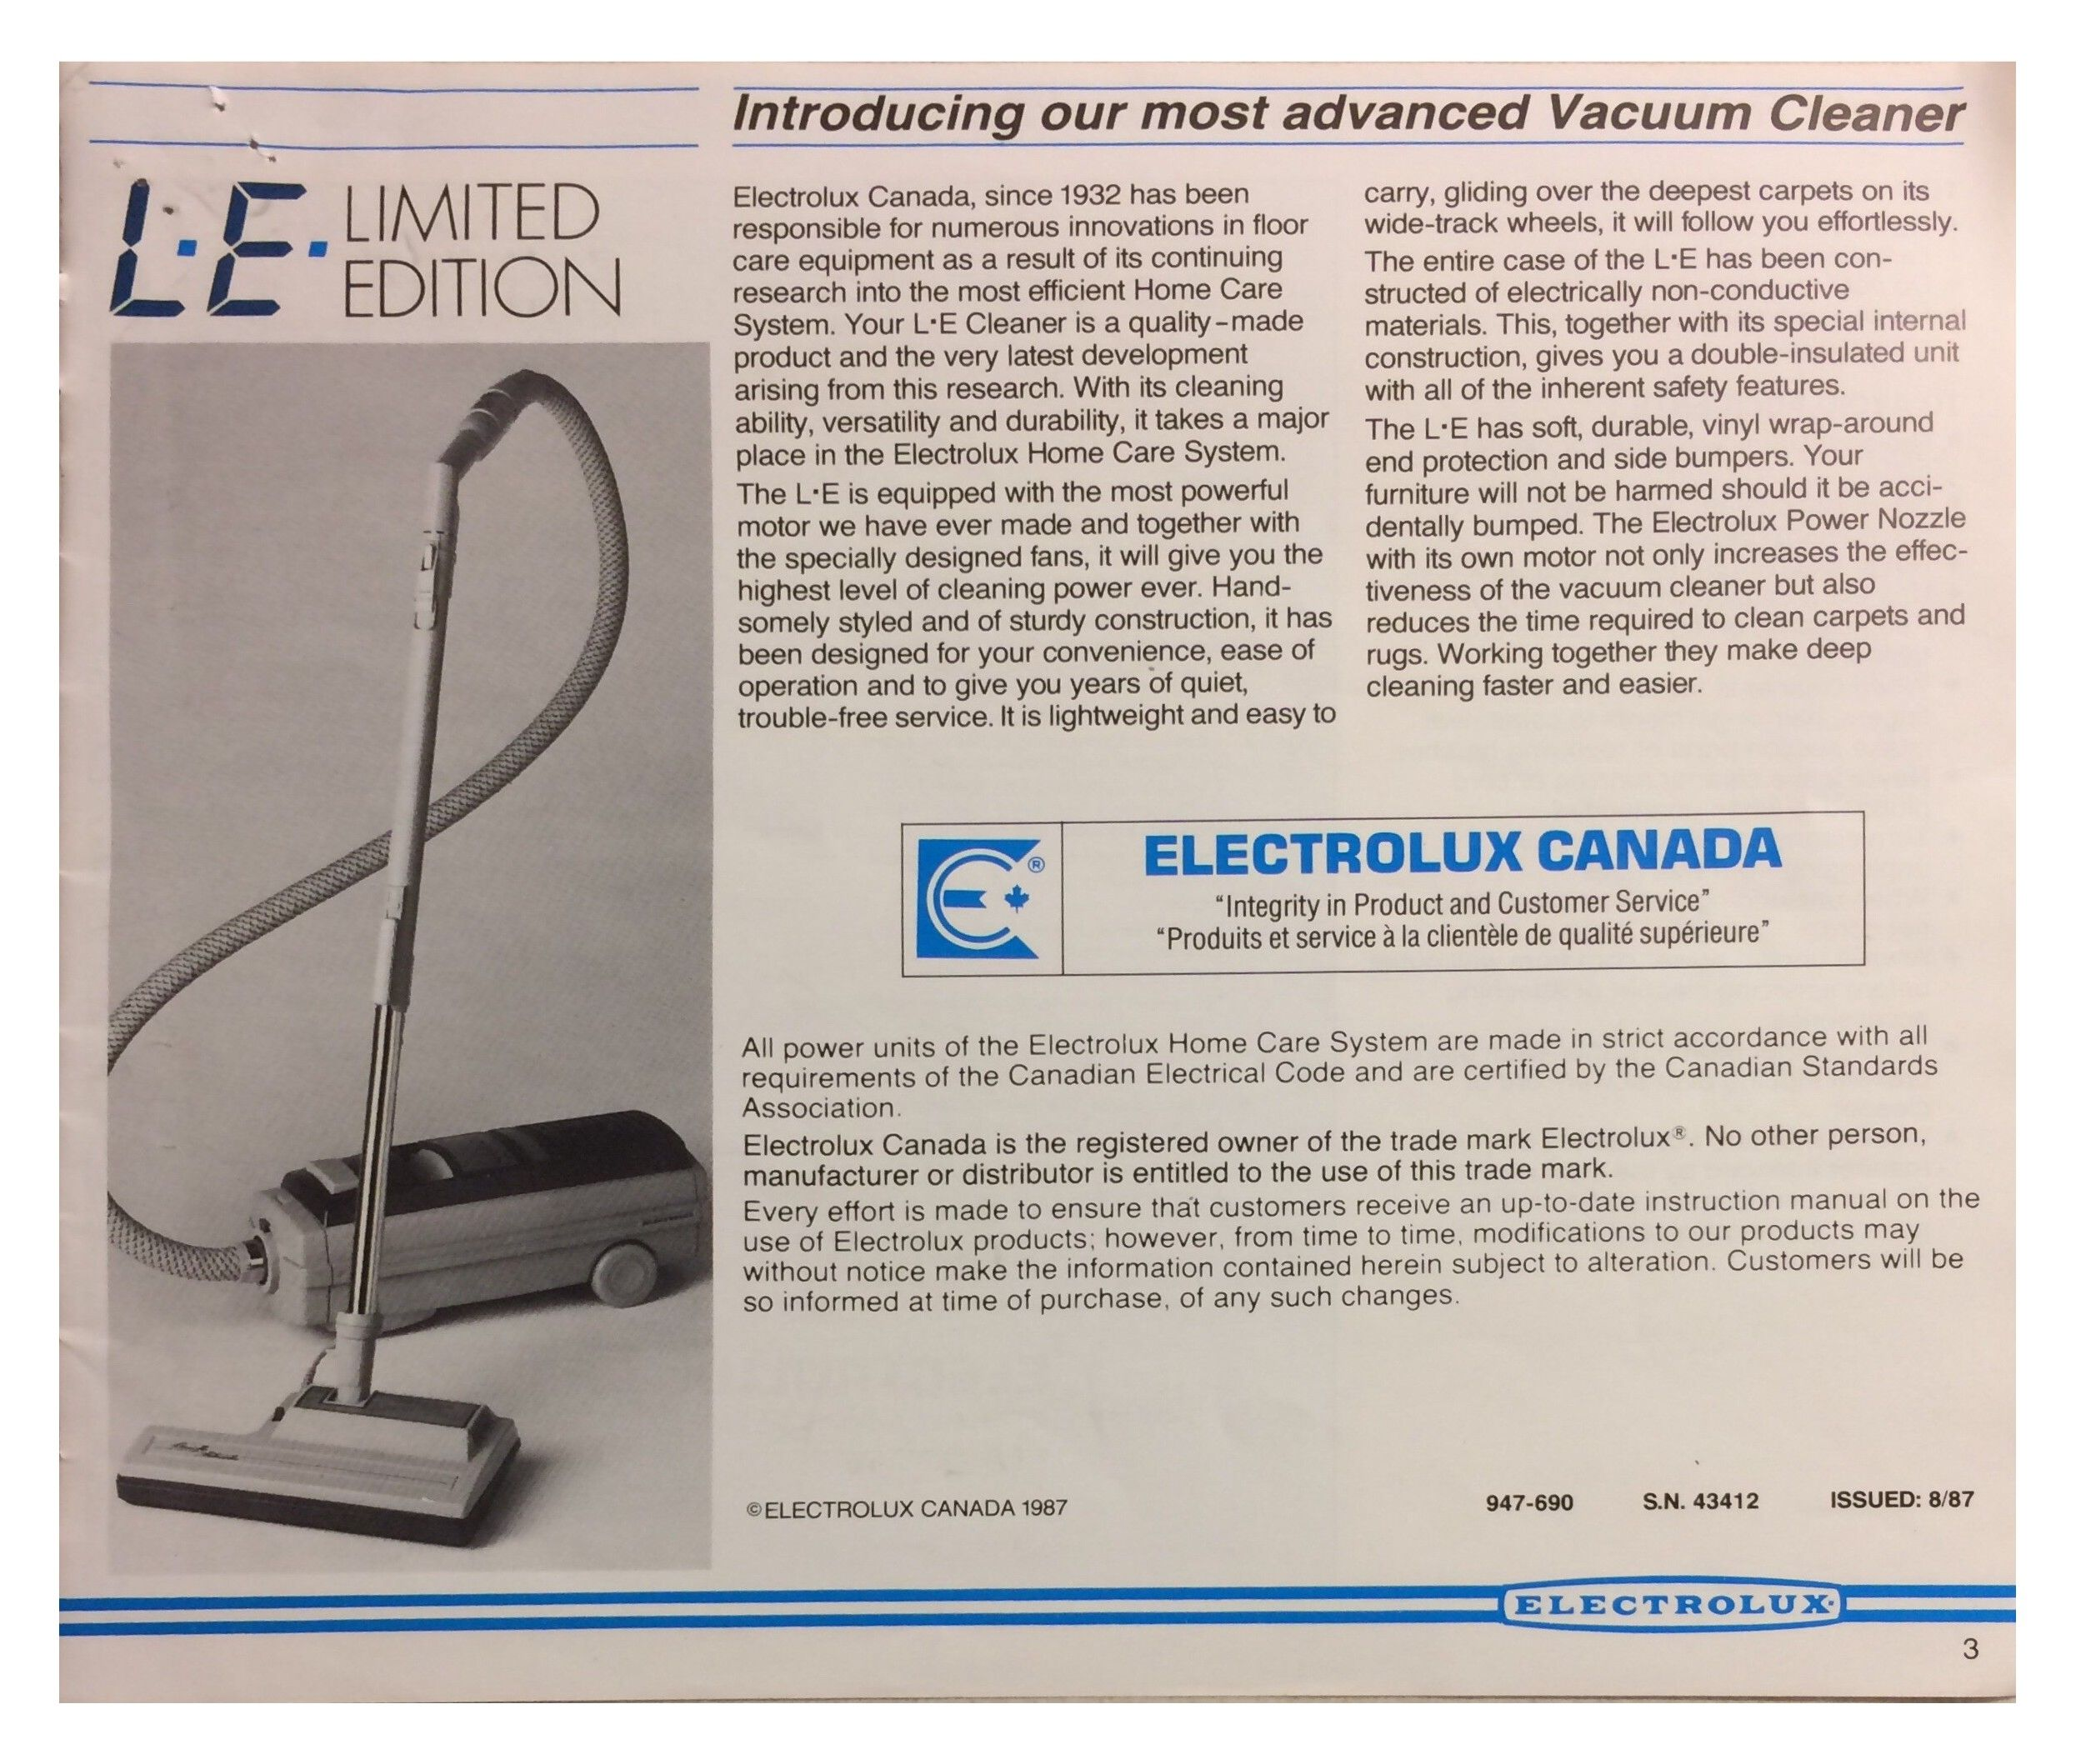 Le Electrolux Limited Edition Vacuum Cleaner Manual Pg 3 Electrolux Electrolux Vacuum Vacuums